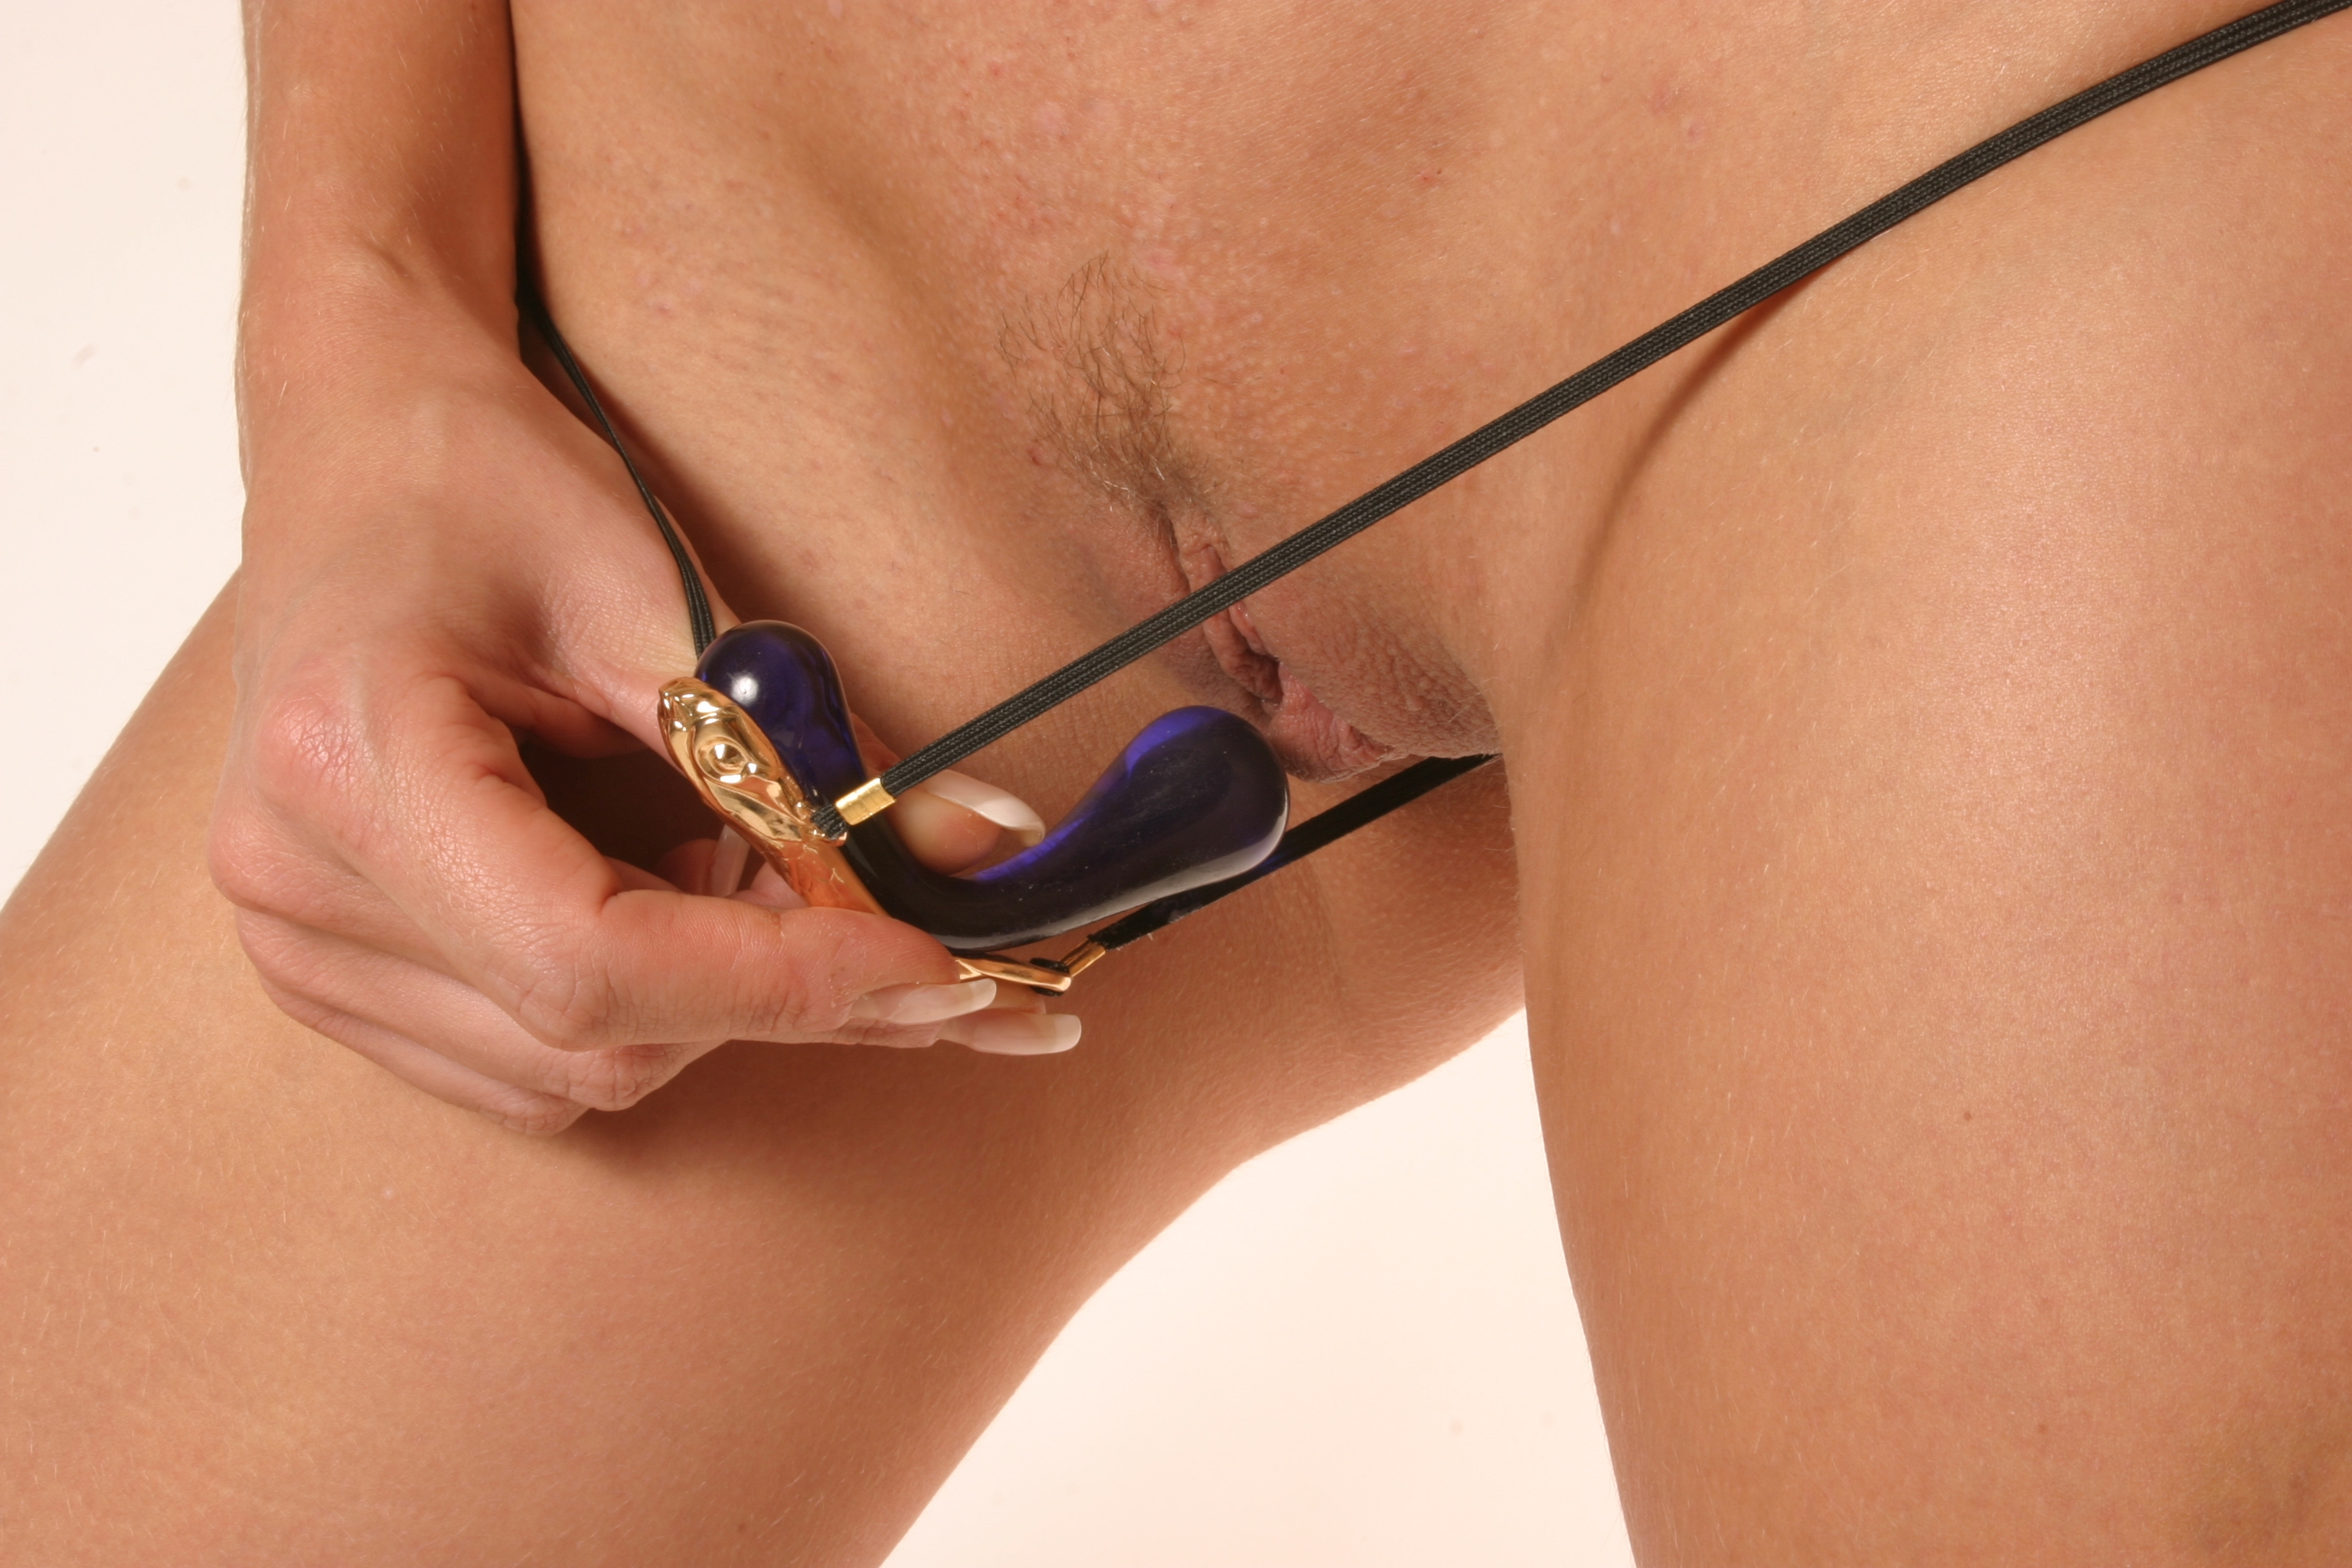 insertable-clit-jewelry